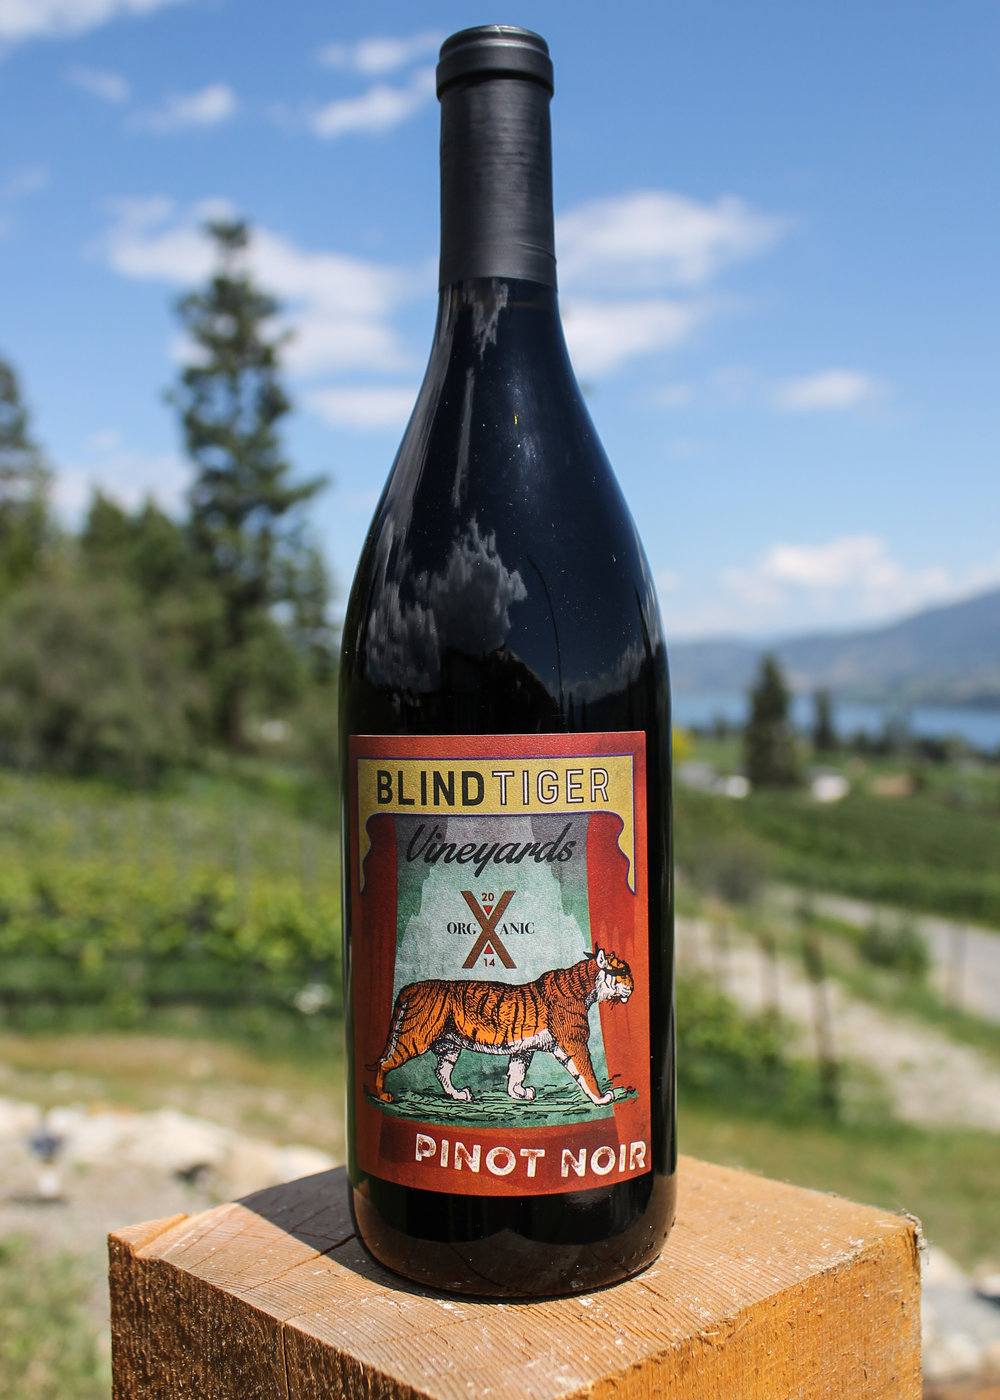 2014 Pinot Noir  - $25.95Our New World style Pinot Noir! Very fruity on the nose with black cherry, ripe strawberry, black pepper with slight notes of jasmine. Nice light tannins and cherry flavours end with a light white pepper and jasmine finish. This Pinot will pair well with summer BBQ's, Duck and Salmon. Cellar through 2018.